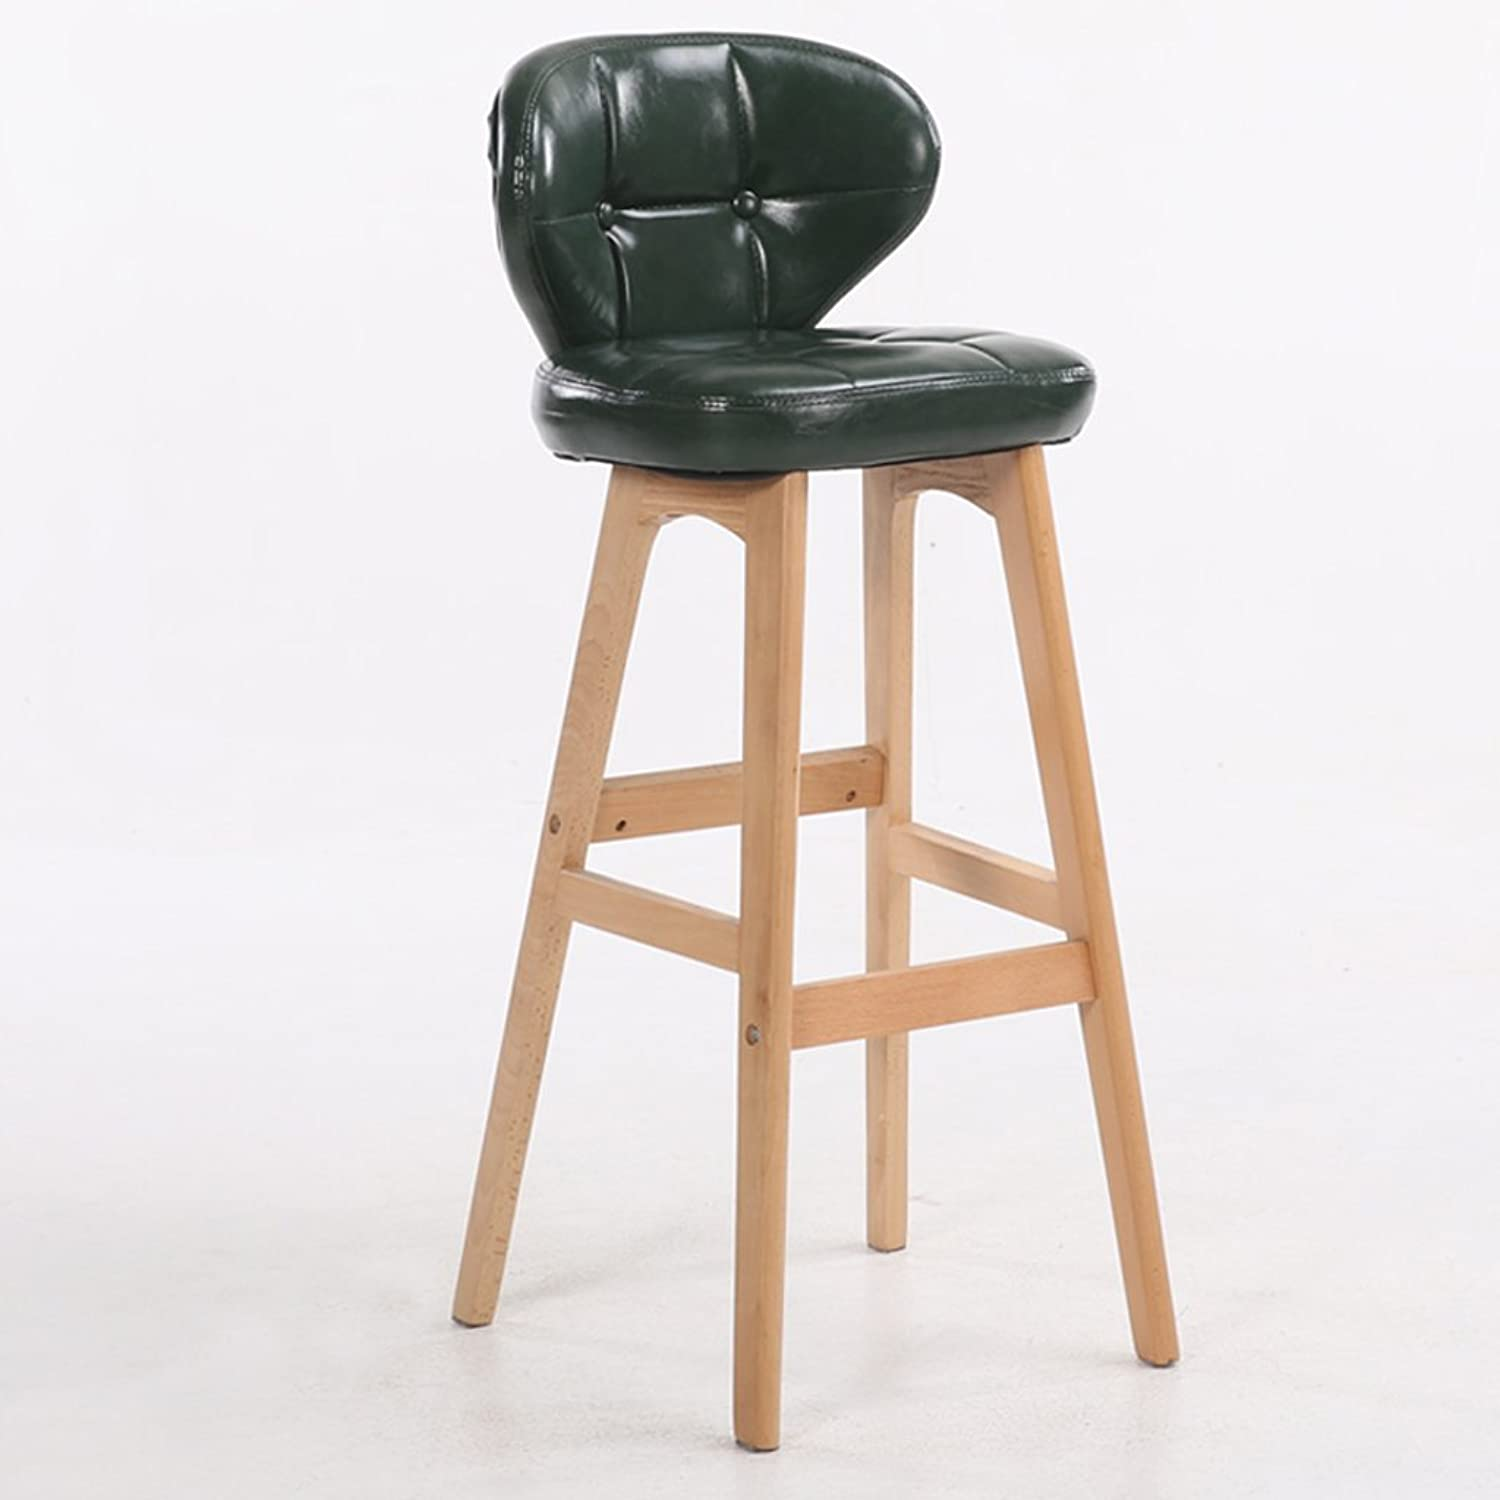 Bar Stool Wooden Bar Chair Leather backrest Kitchen Breakfast Chair Retro, 1Pcs, 40  37  68cm (color   Green)